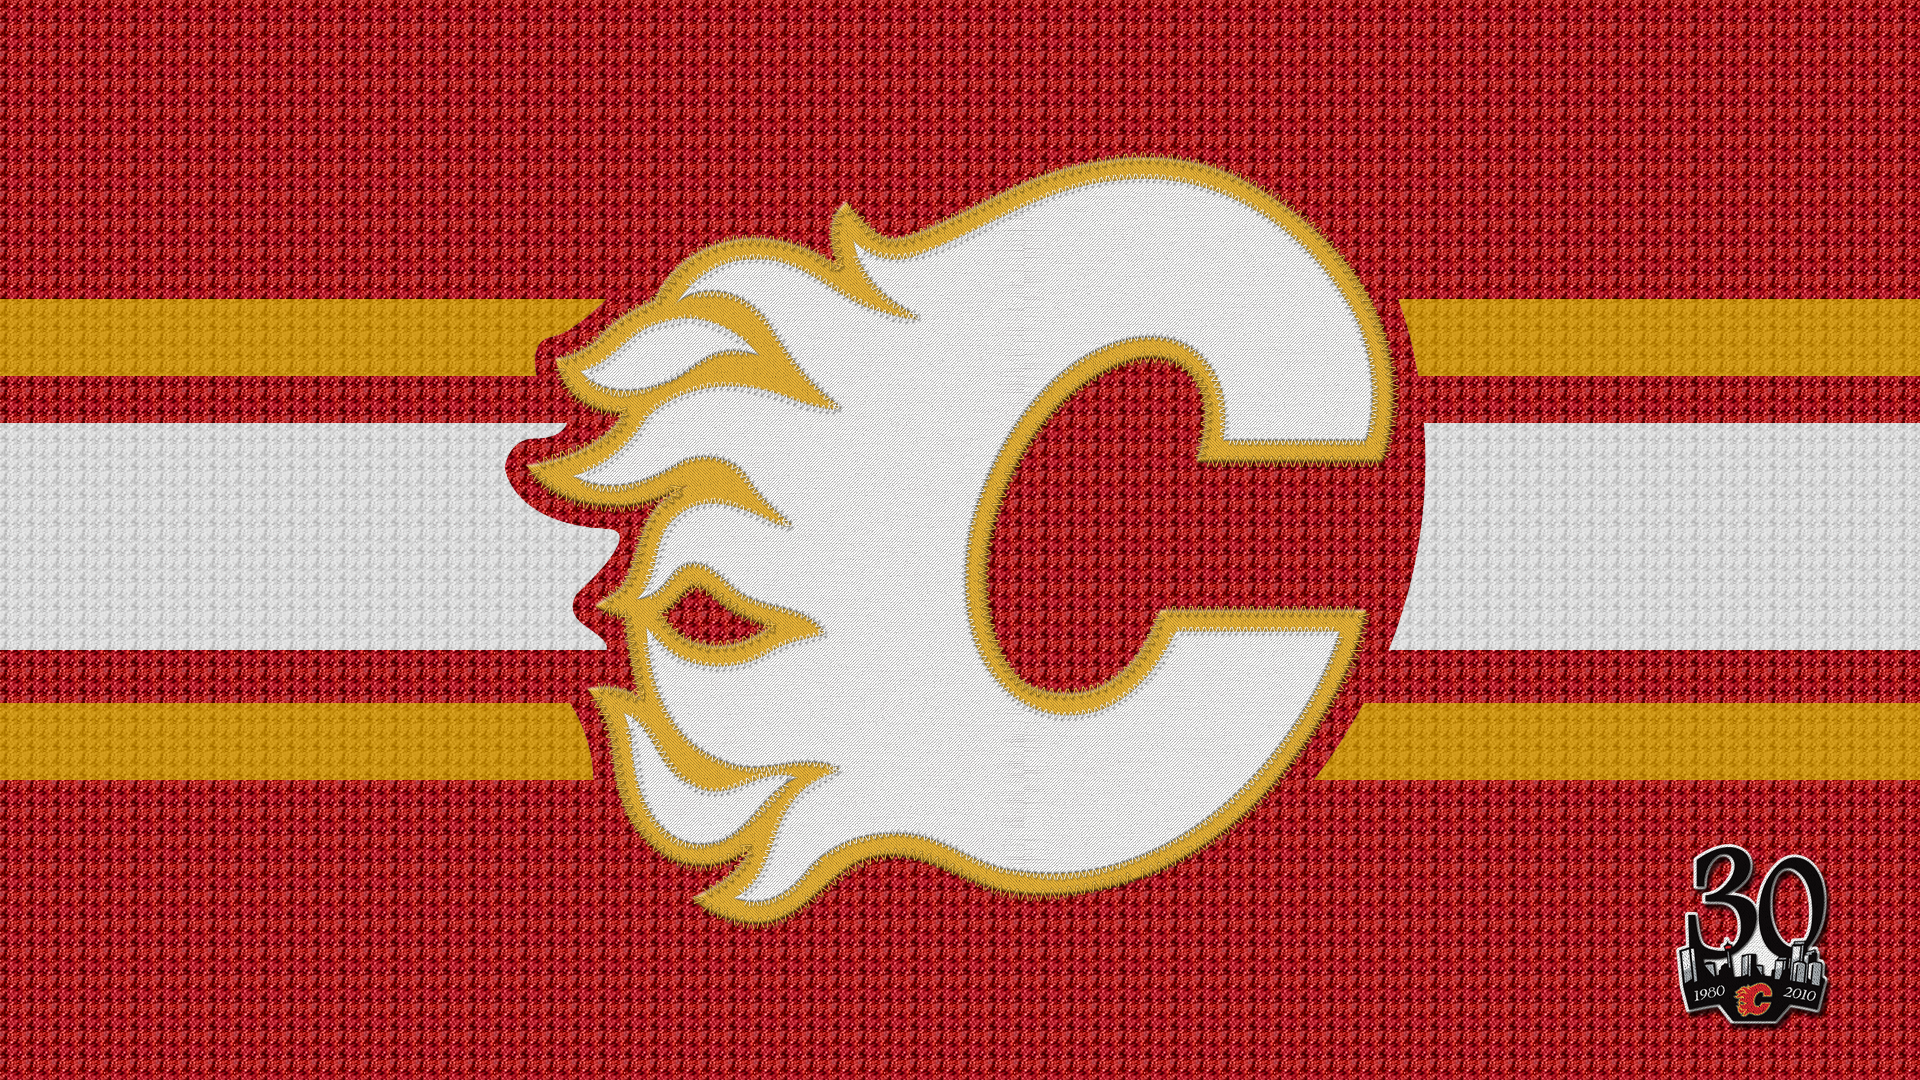 Calgary Flames 30th Jersey By Bruins4life On Deviantart